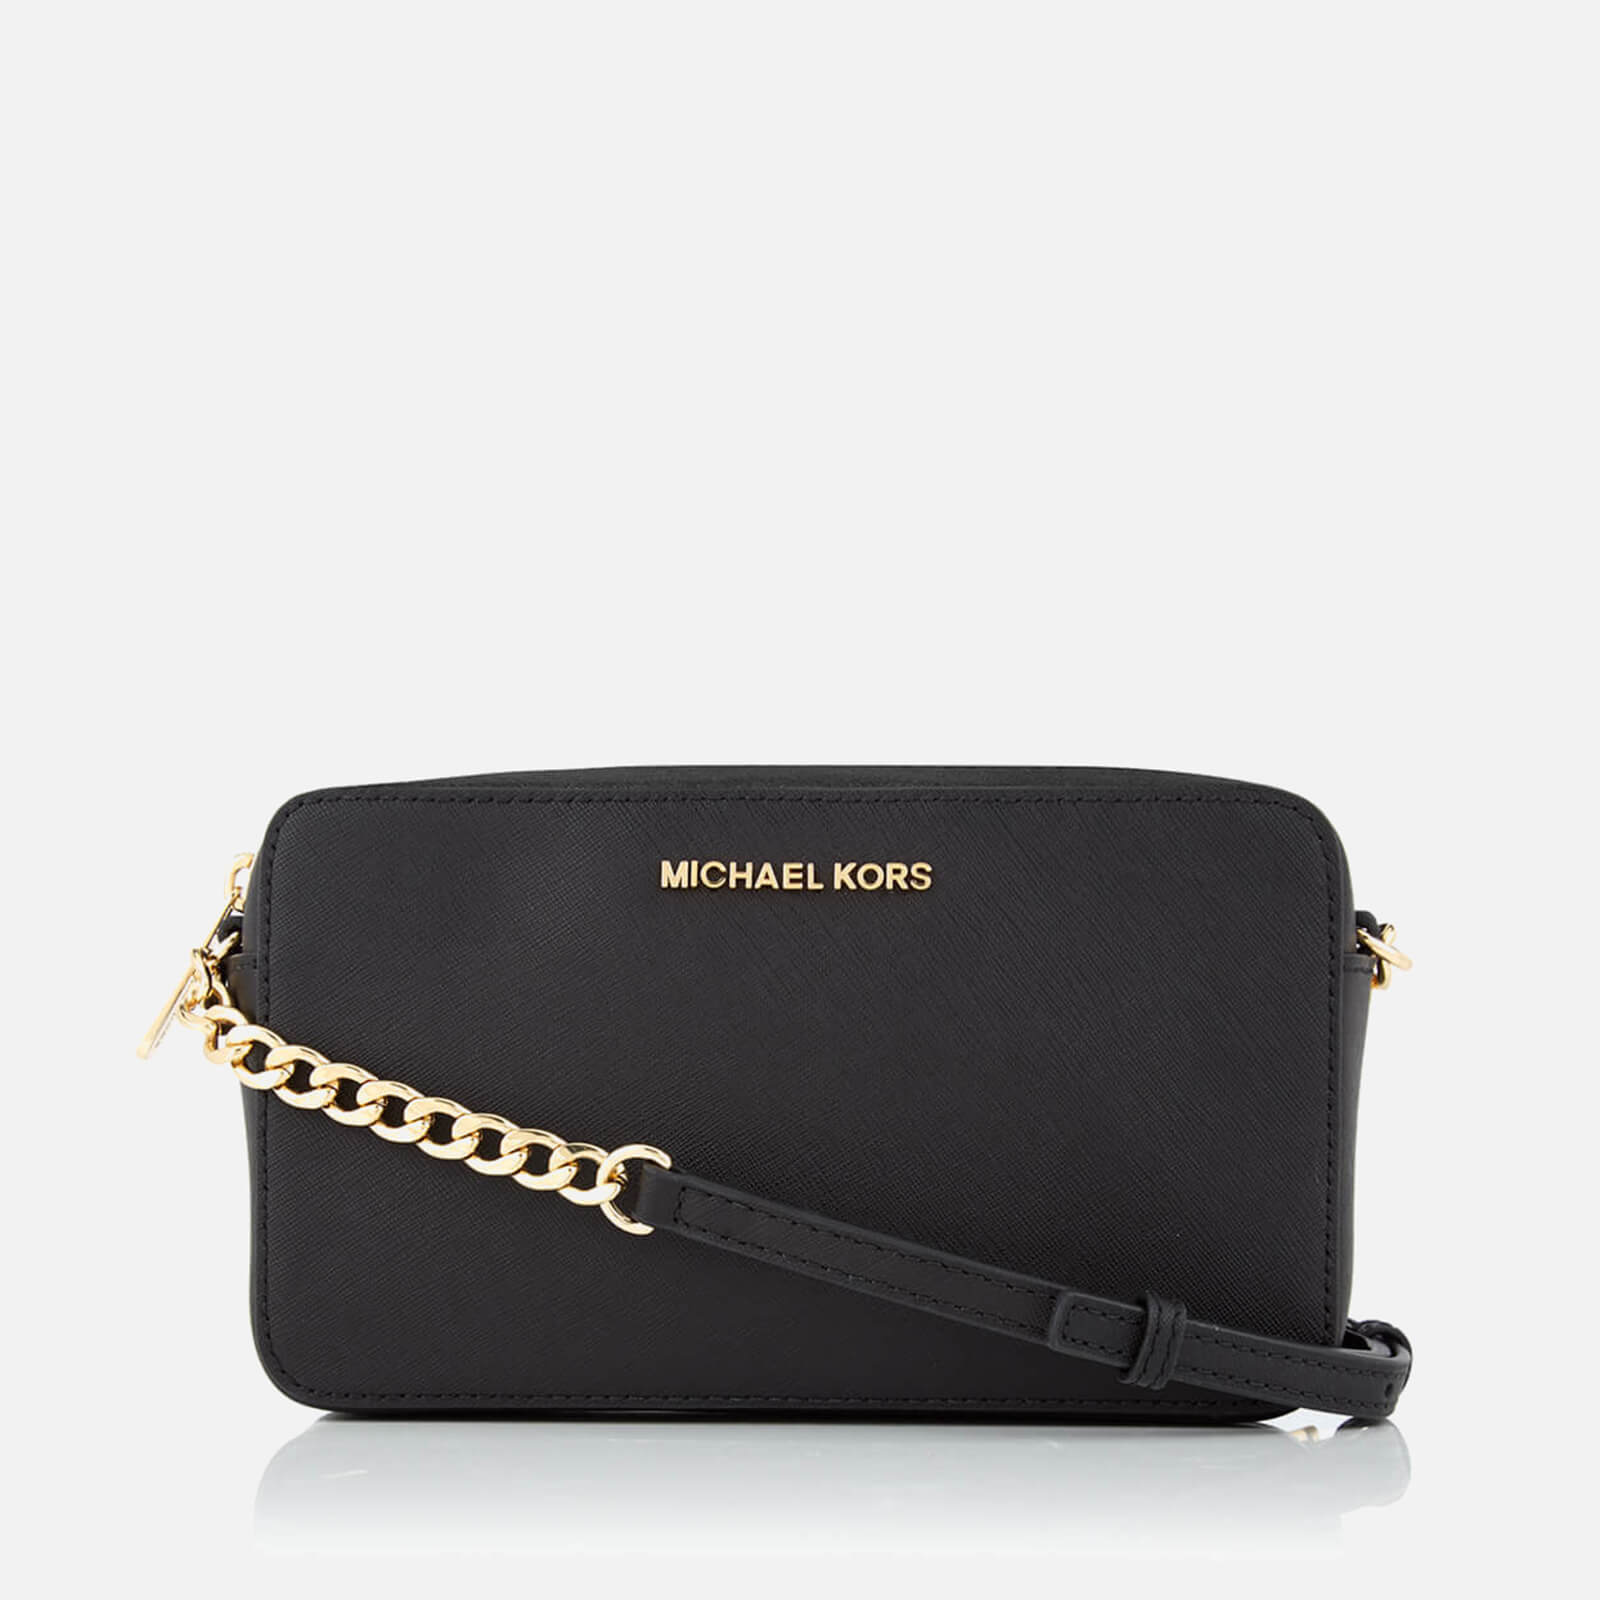 f3ca7e5c3633 MICHAEL MICHAEL KORS Women s Jet Set Travel Medium East West Cross Body Bag  - Black - Free UK Delivery over £50